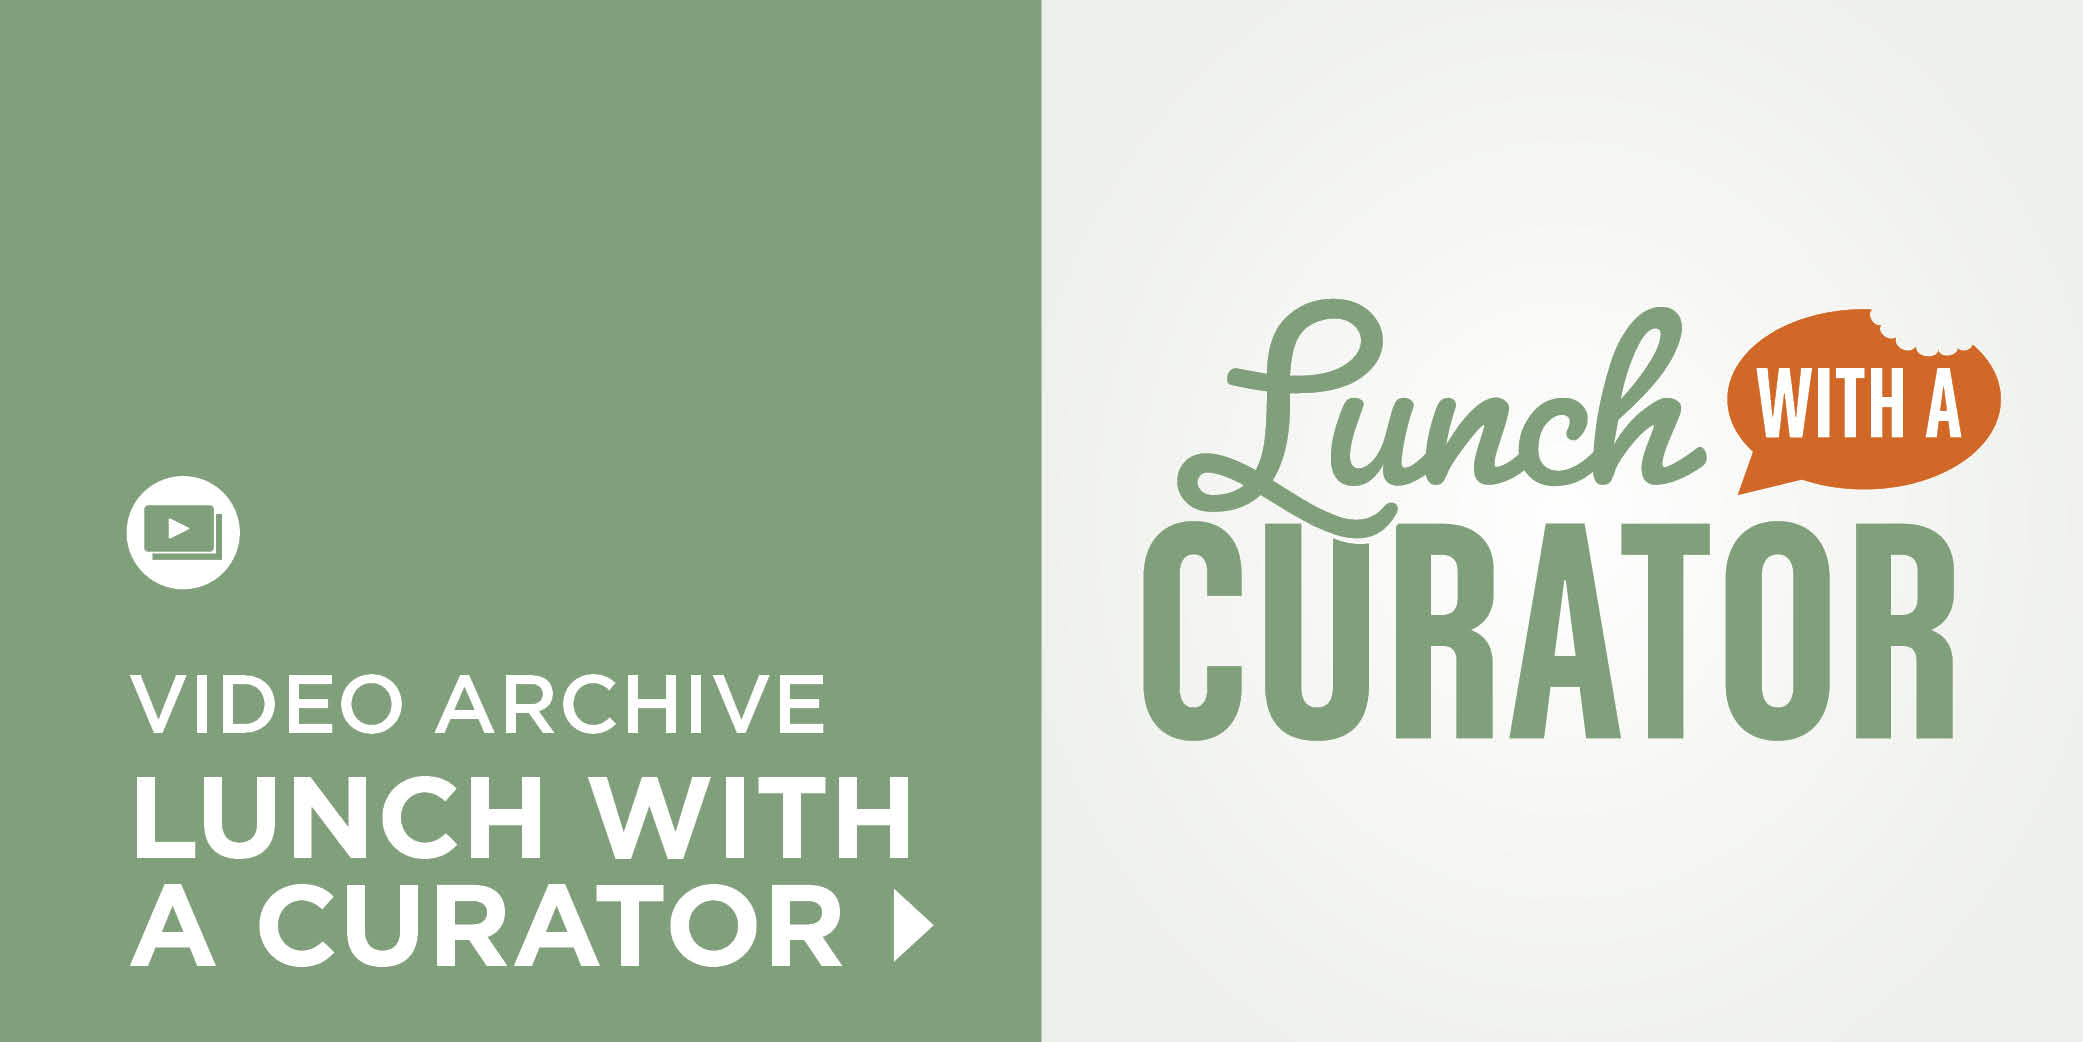 Lunch with a Curator Videos